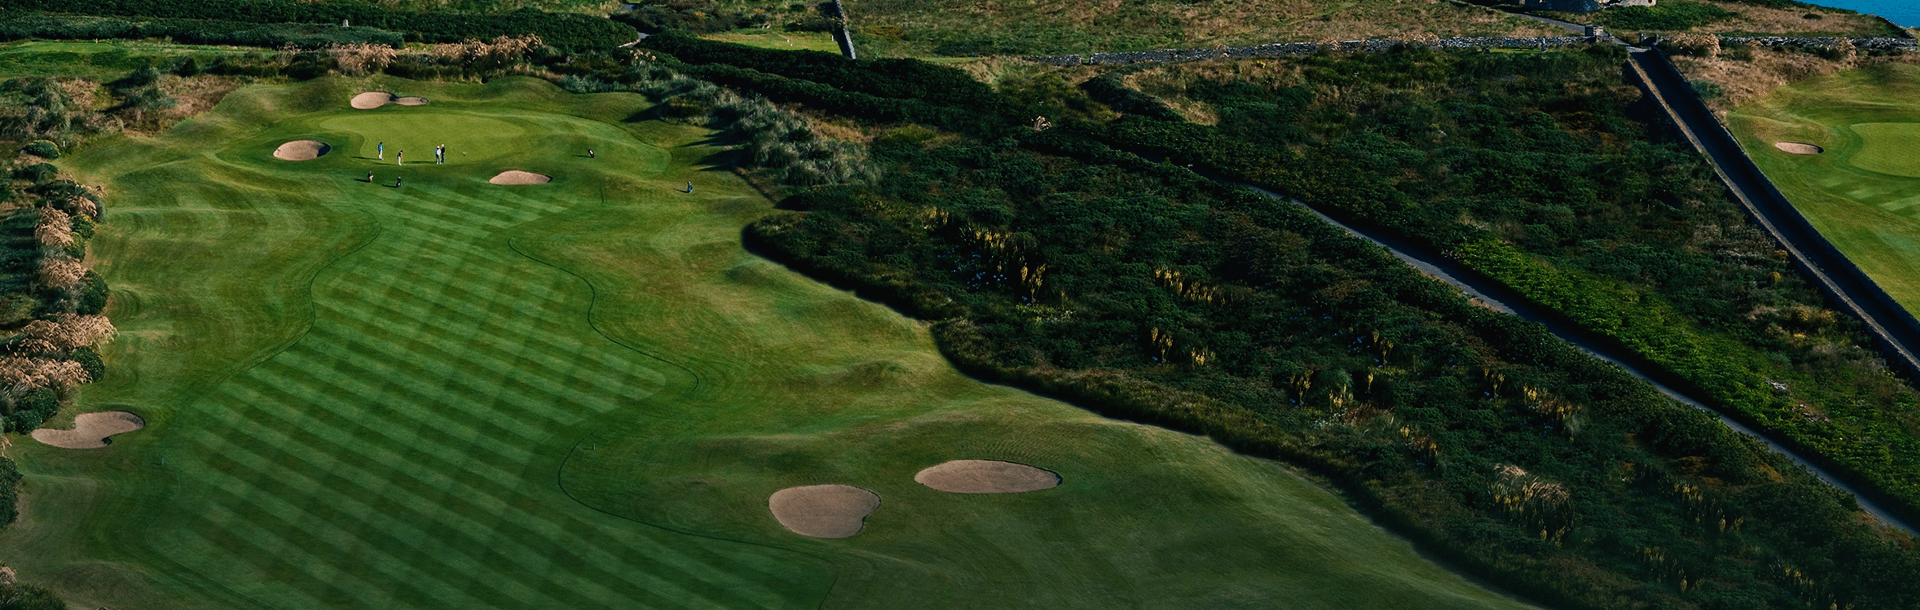 Ireland Golf Trips Special Offers